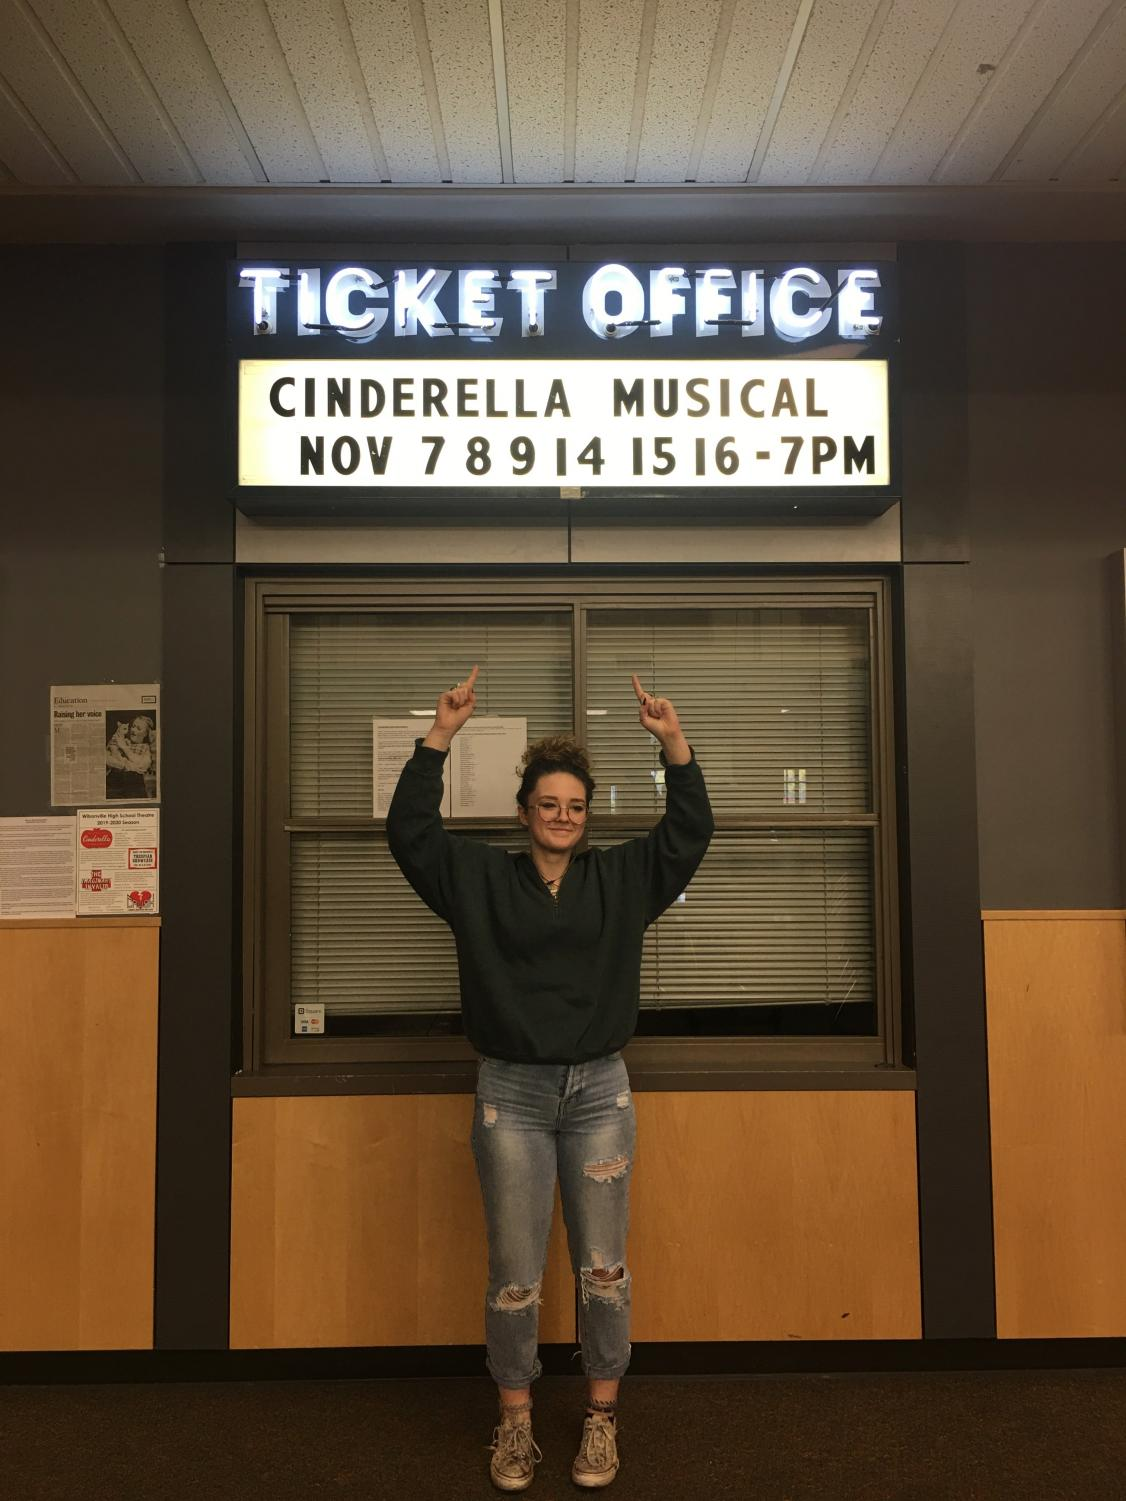 Pictured above is ensemble member Kate Hedgepeth presenting the showtimes for this fall's musical Cinderella.